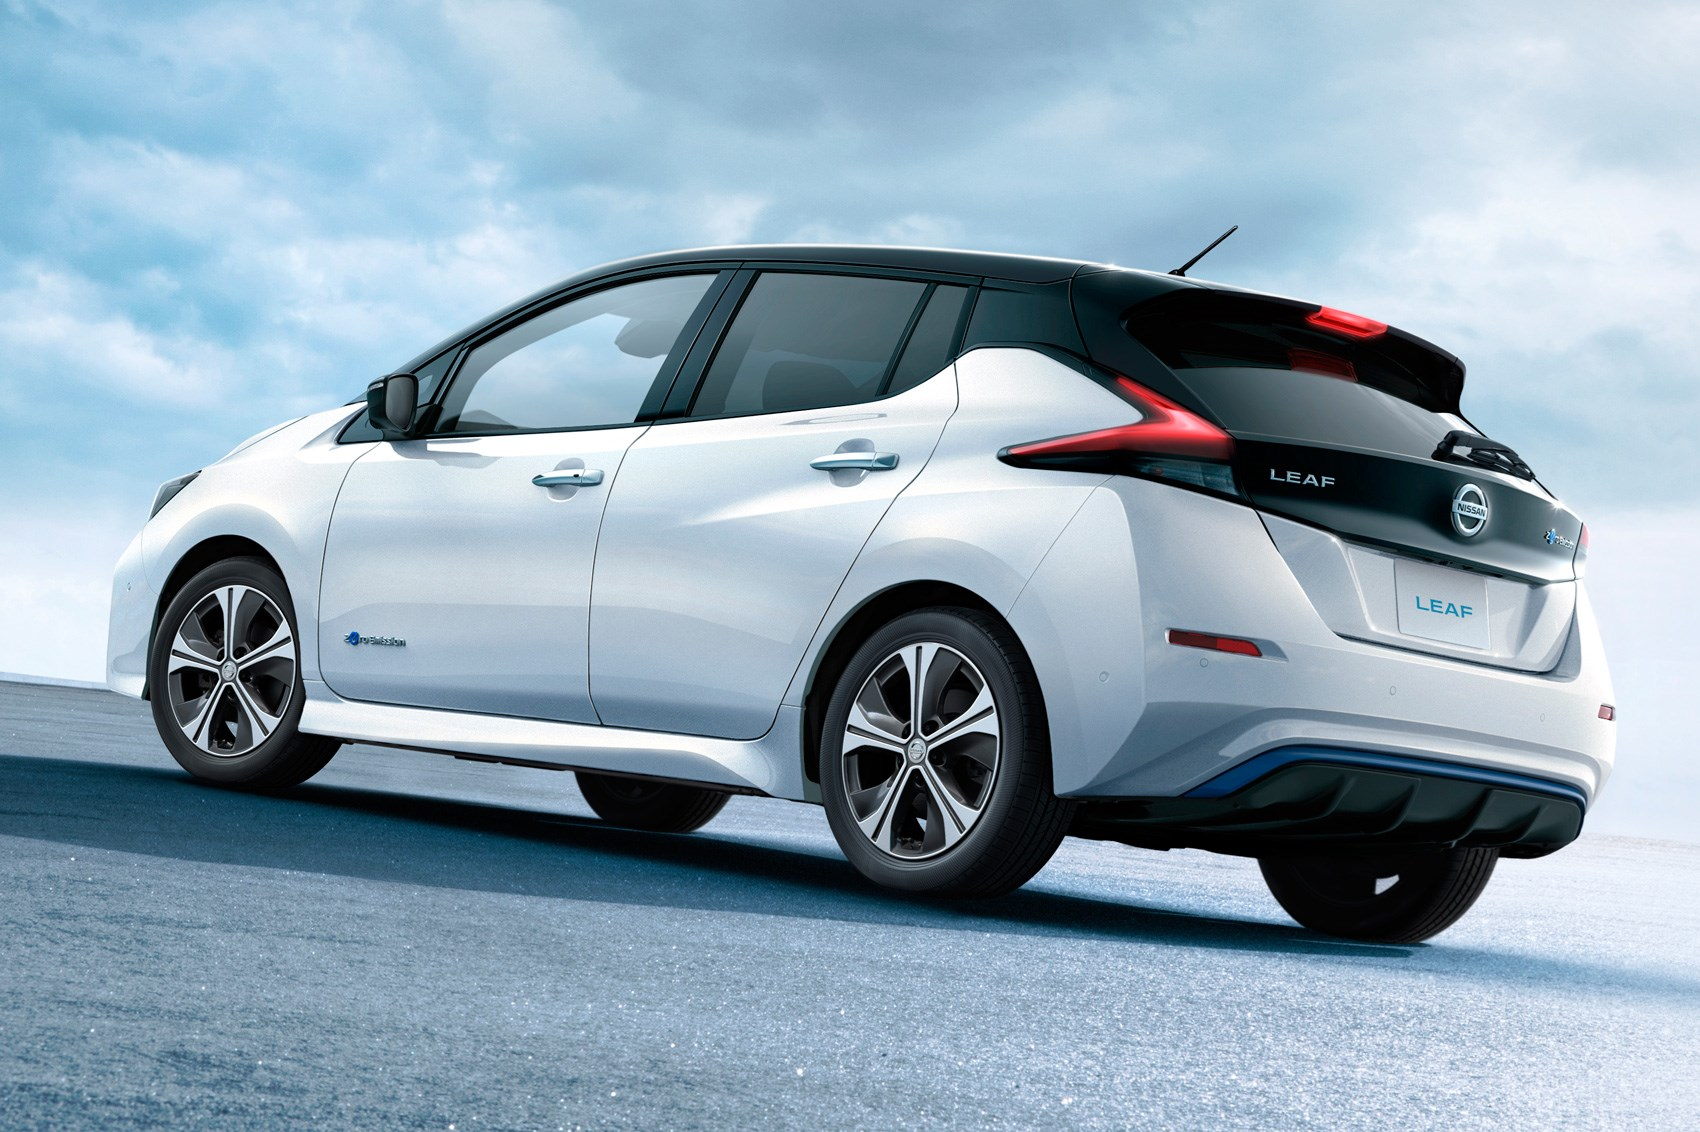 A new generation of 2018 Nissan Leaf model year 23